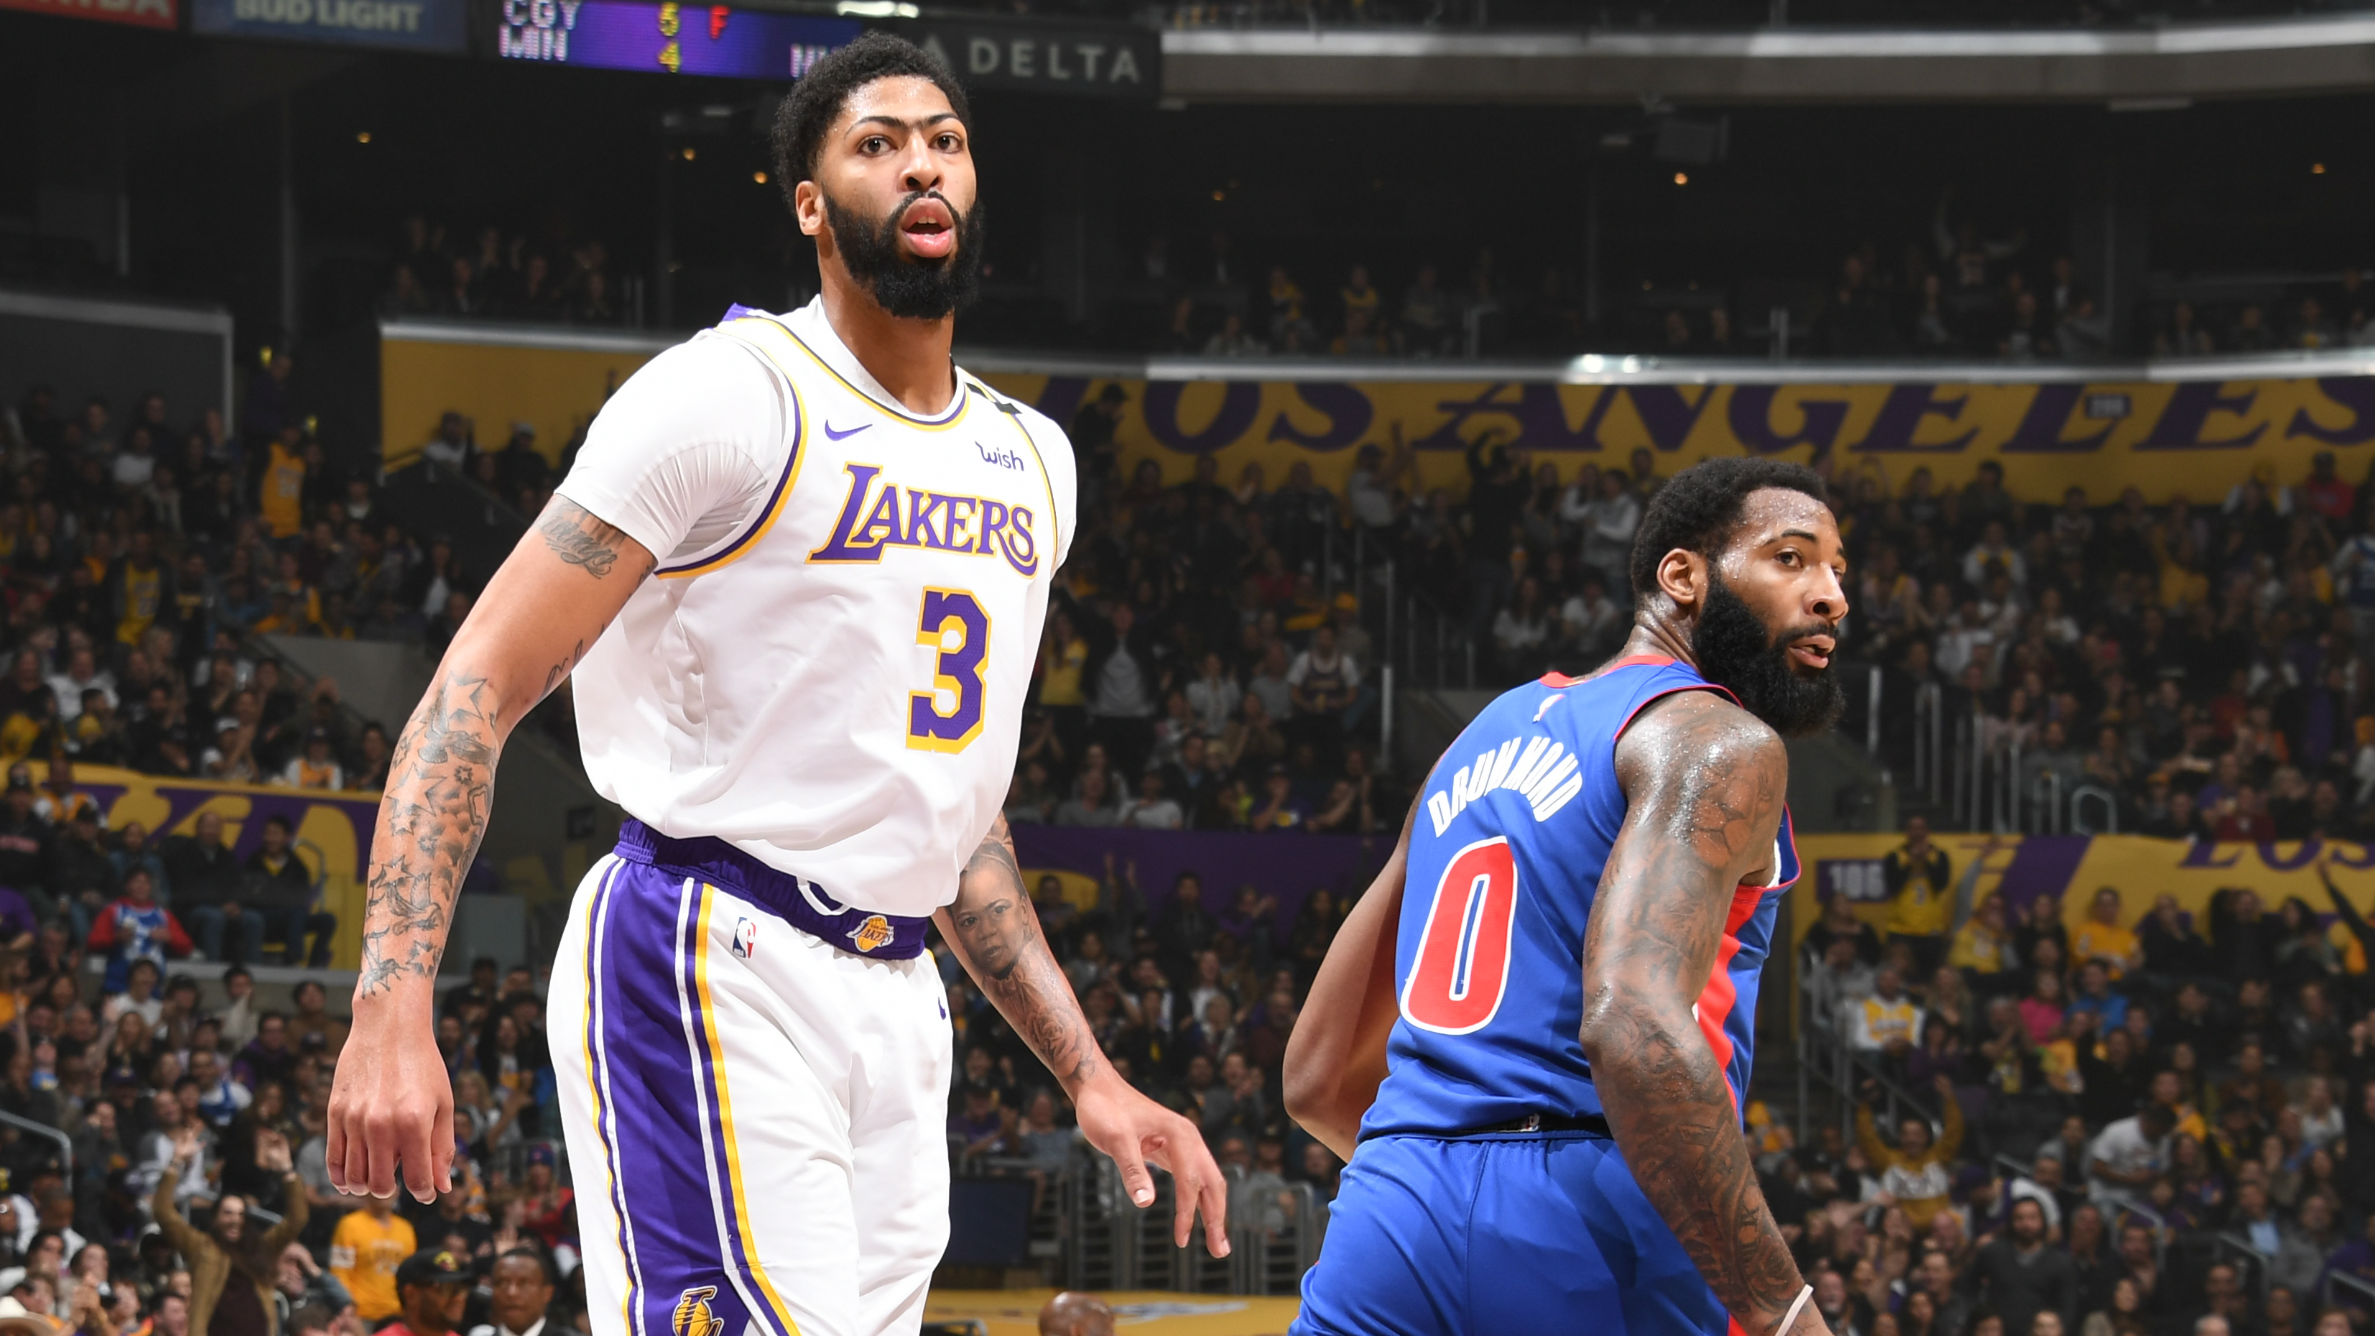 Pistons @ Lakers